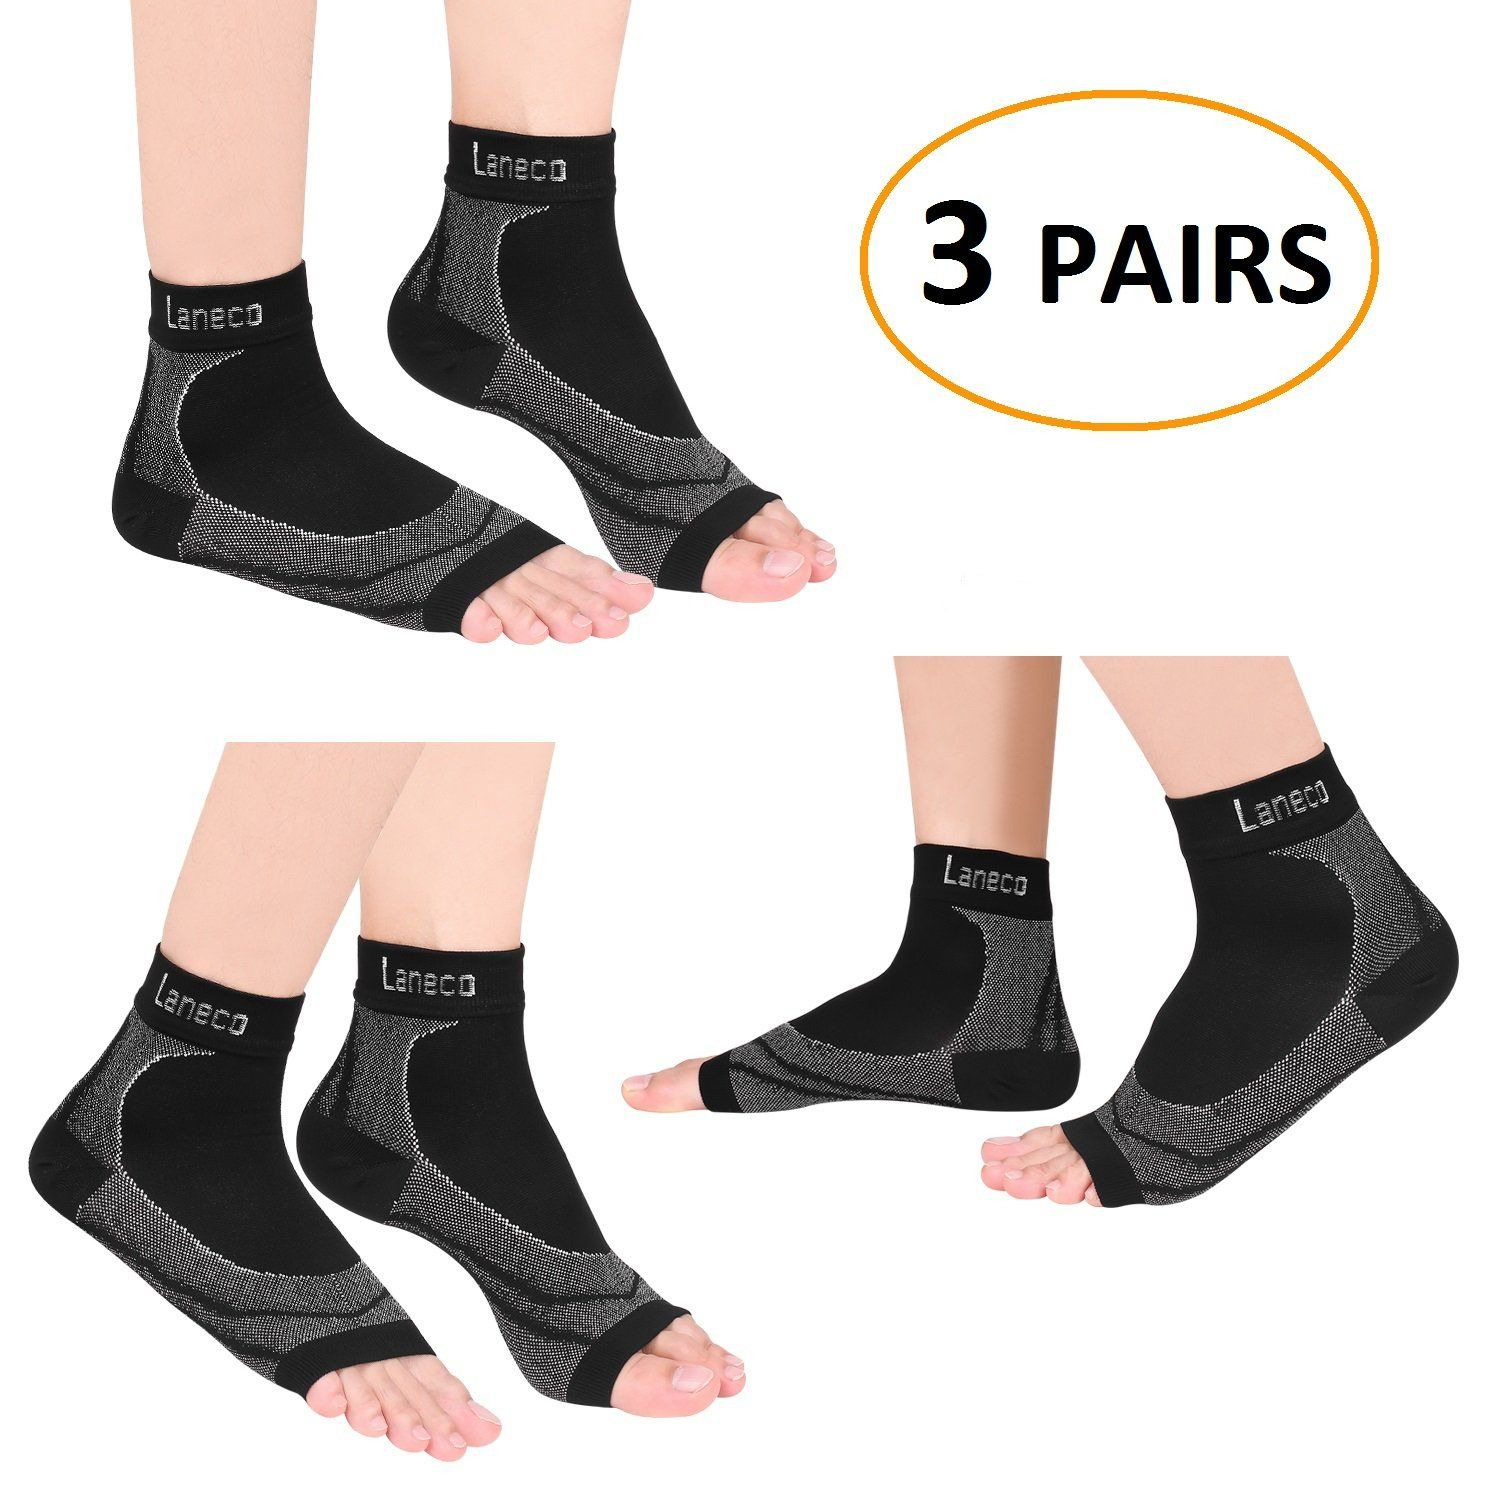 Men Golf Clothing  Laneco Plantar Fasciitis Socks  Pairs